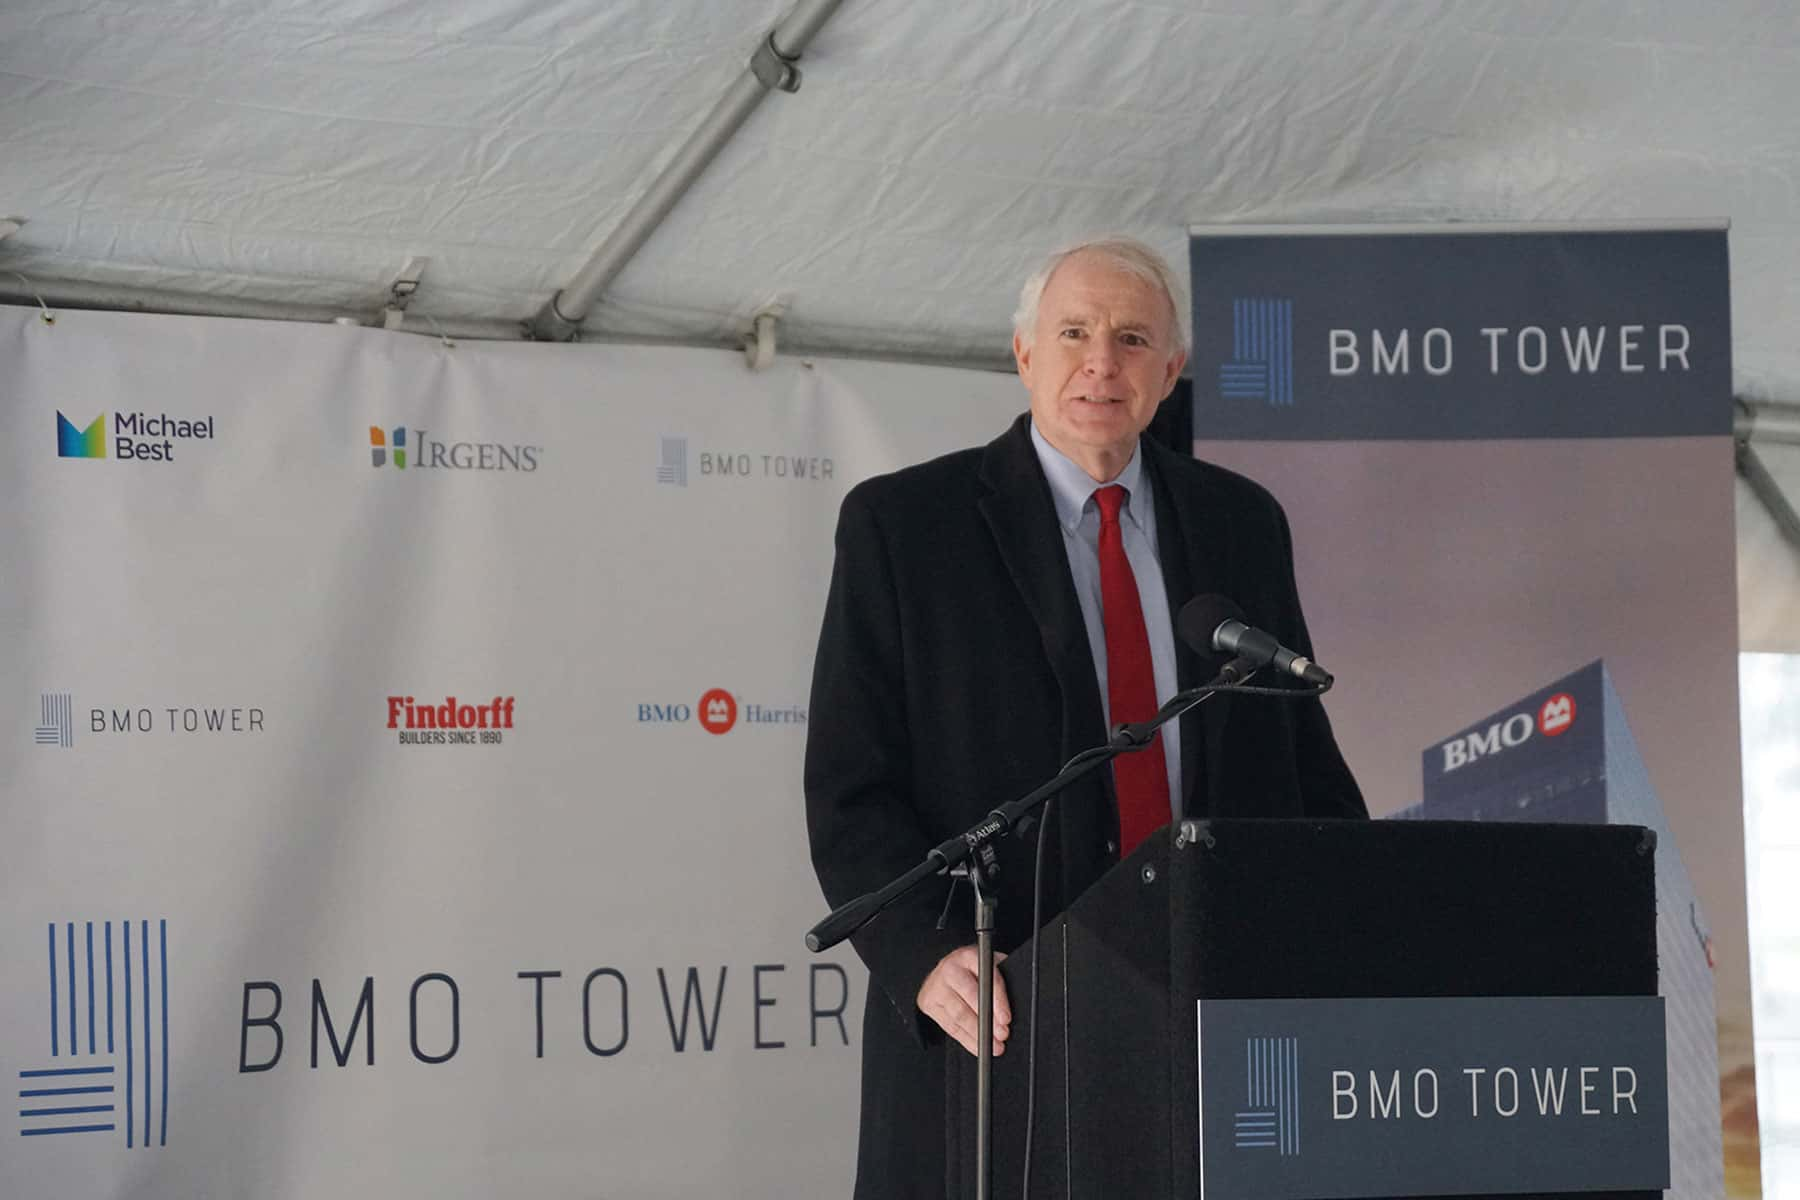 Bmo tower embarks on downtown construction with groundbreaking 111617bmotower257 malvernweather Choice Image